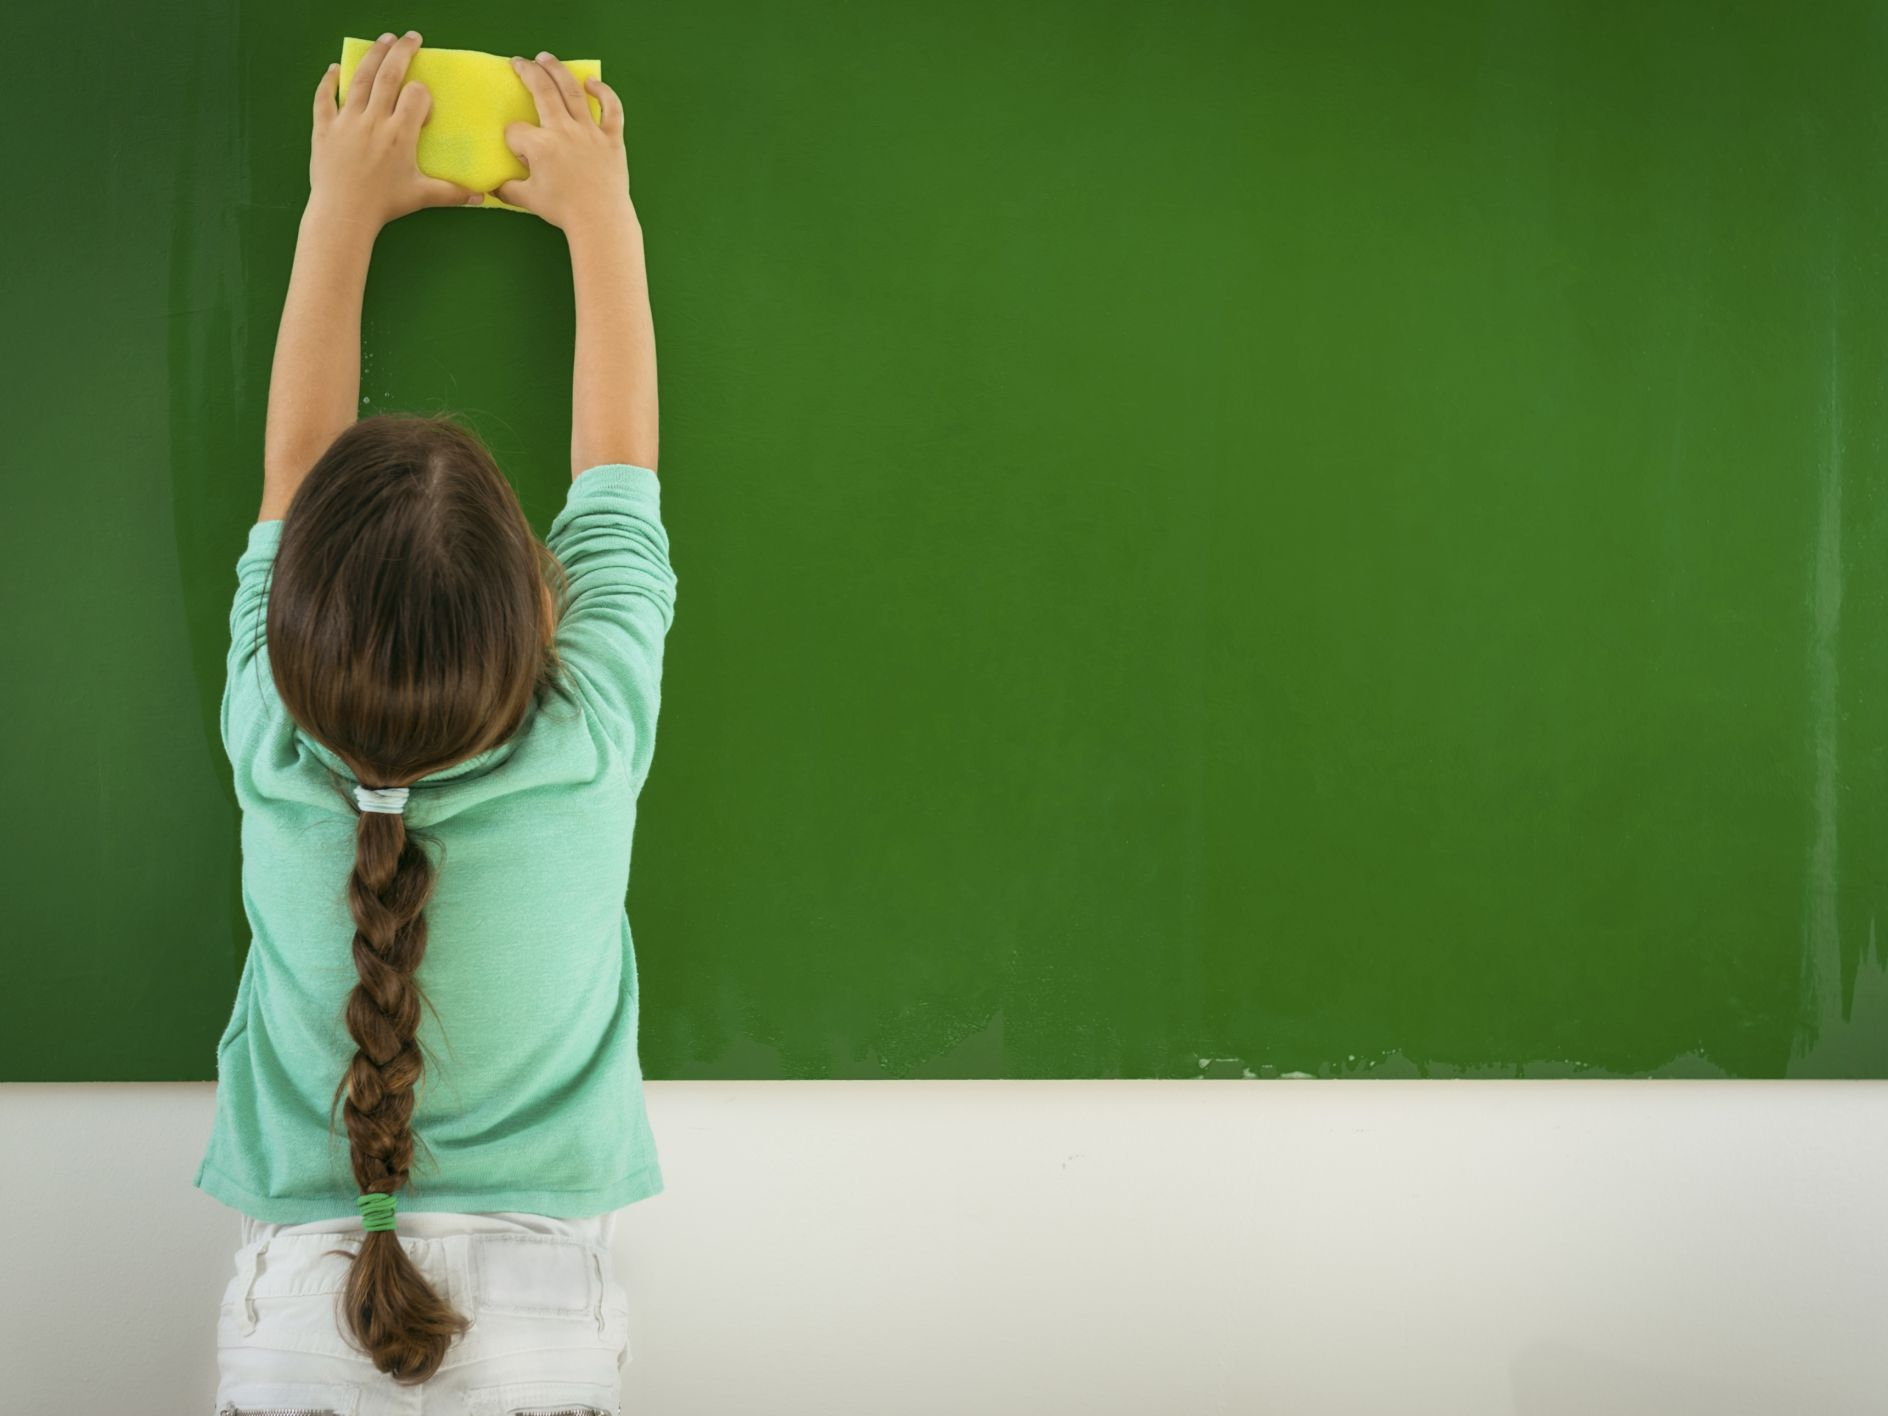 Dealing with Cleanliness in the Classroom